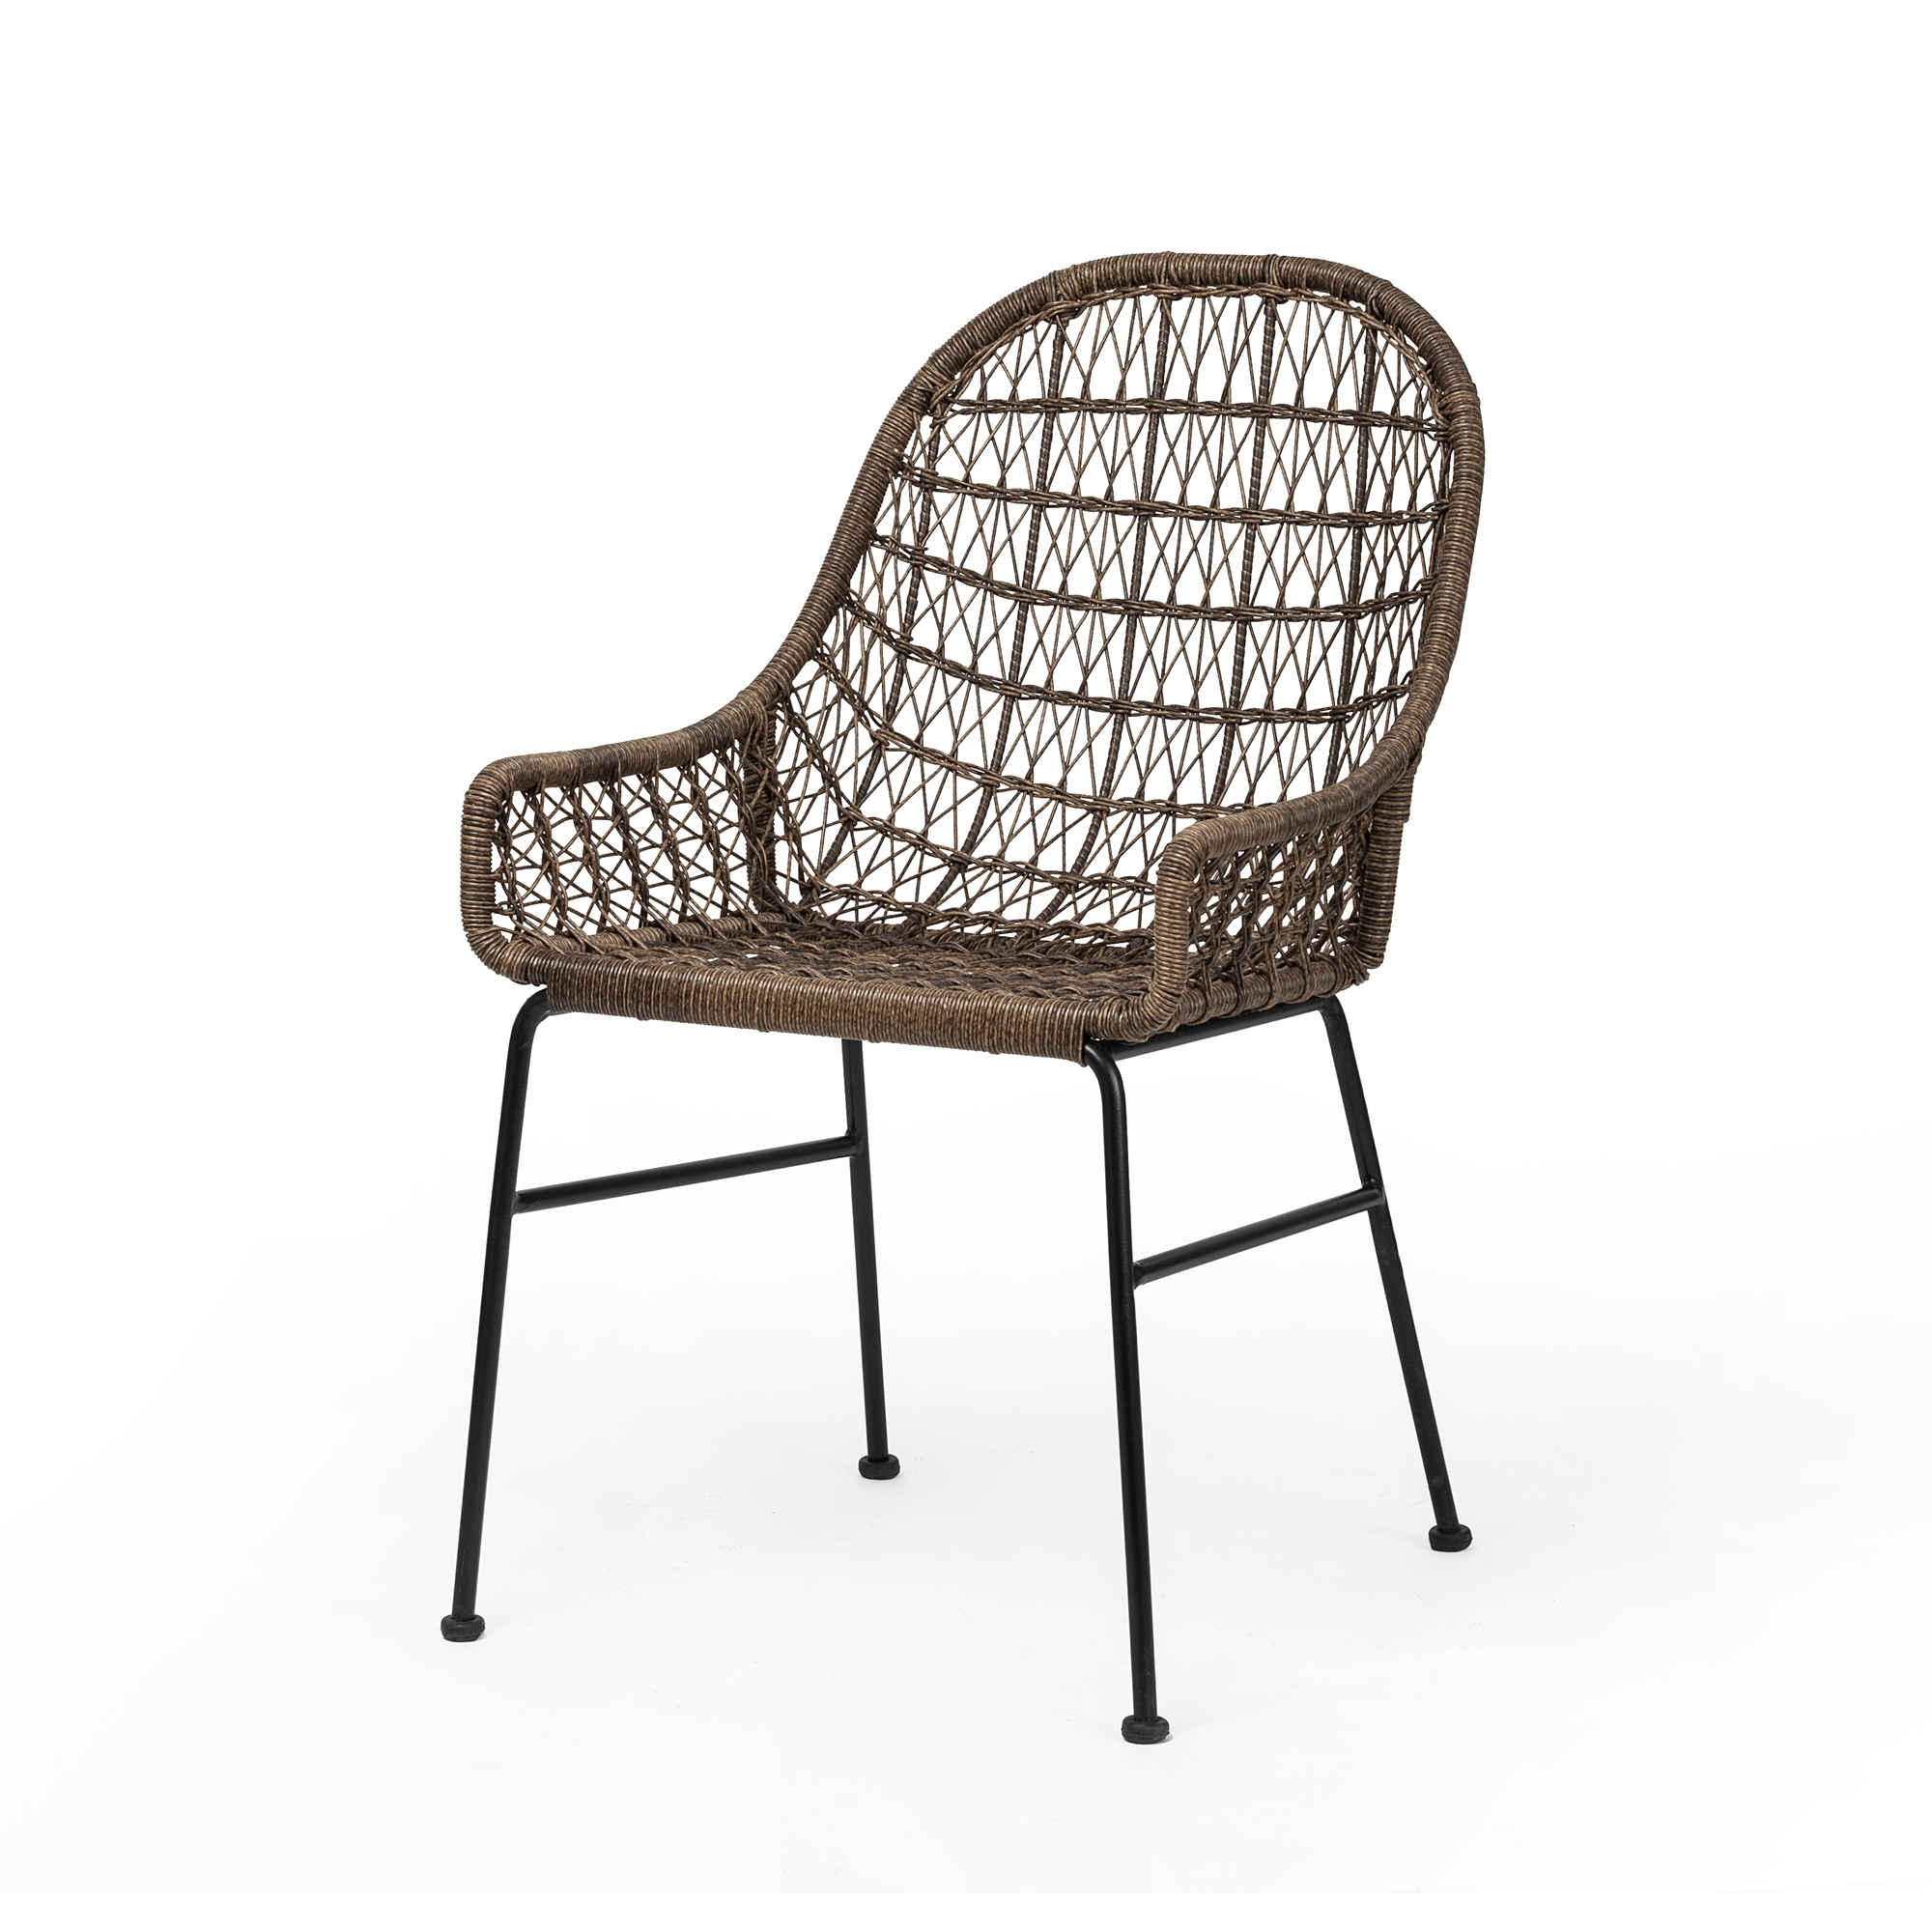 Woven Dining Chair Grass Roots Bandera Woven Dining Chair The Khazana Home Austin Furniture Store